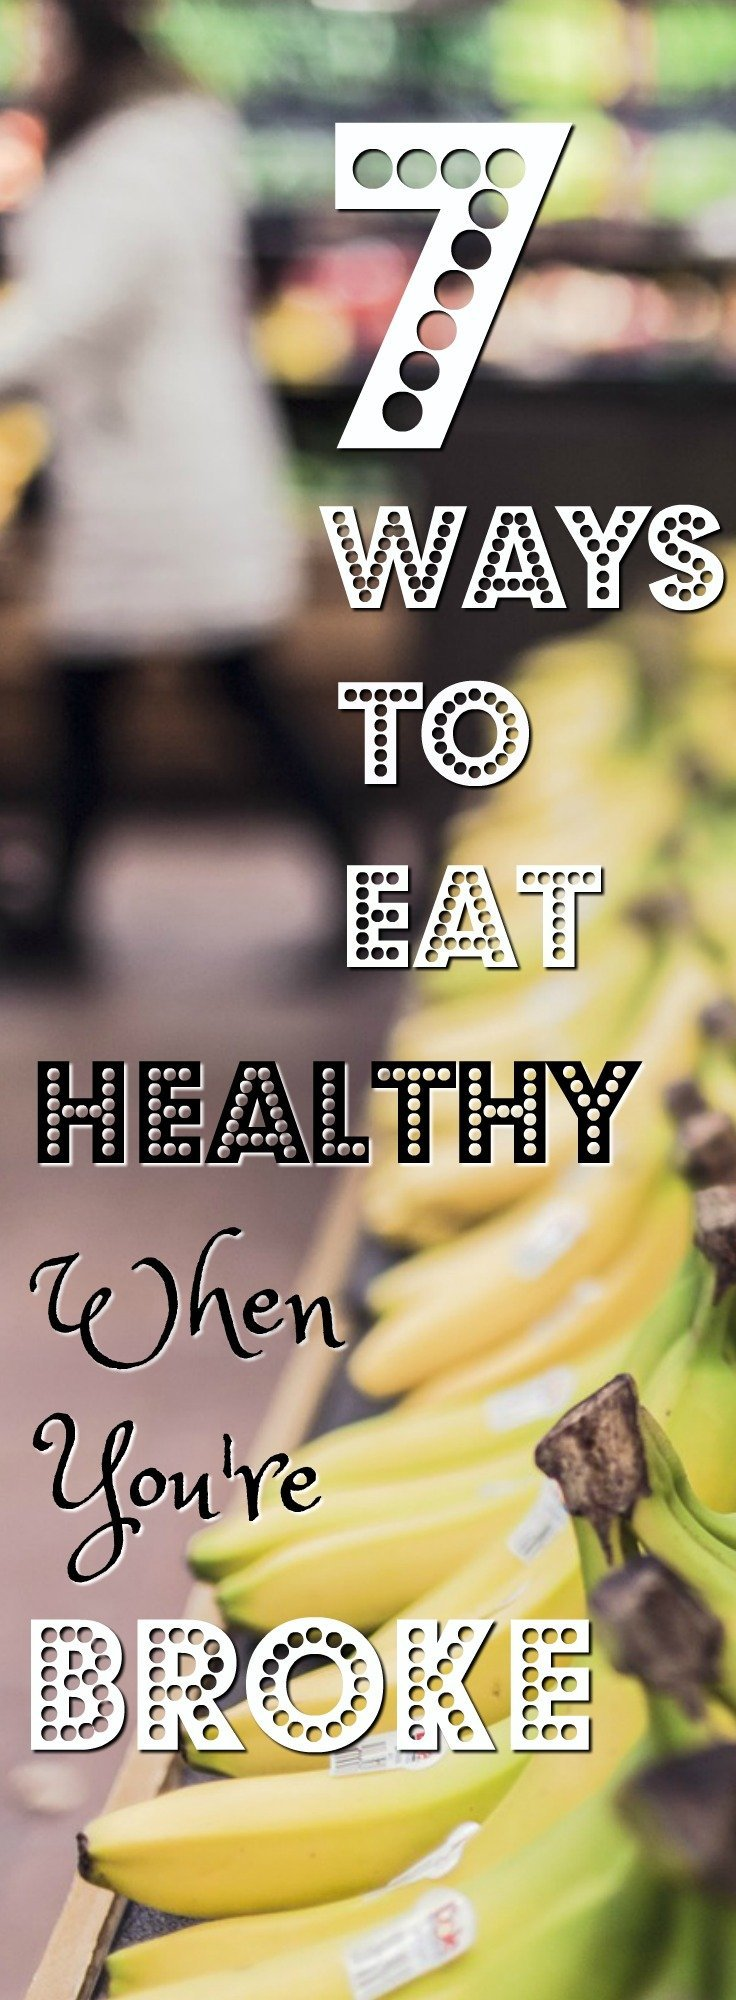 7 ways to eat healthy when you're broke. How to avoid the trap of buying ready meals to save money and also eat right for your whole family! Sharing tips that actually work and that I used as a struggling family. #budget #budgeting #food #healthyfood #familyfood #family budgeting